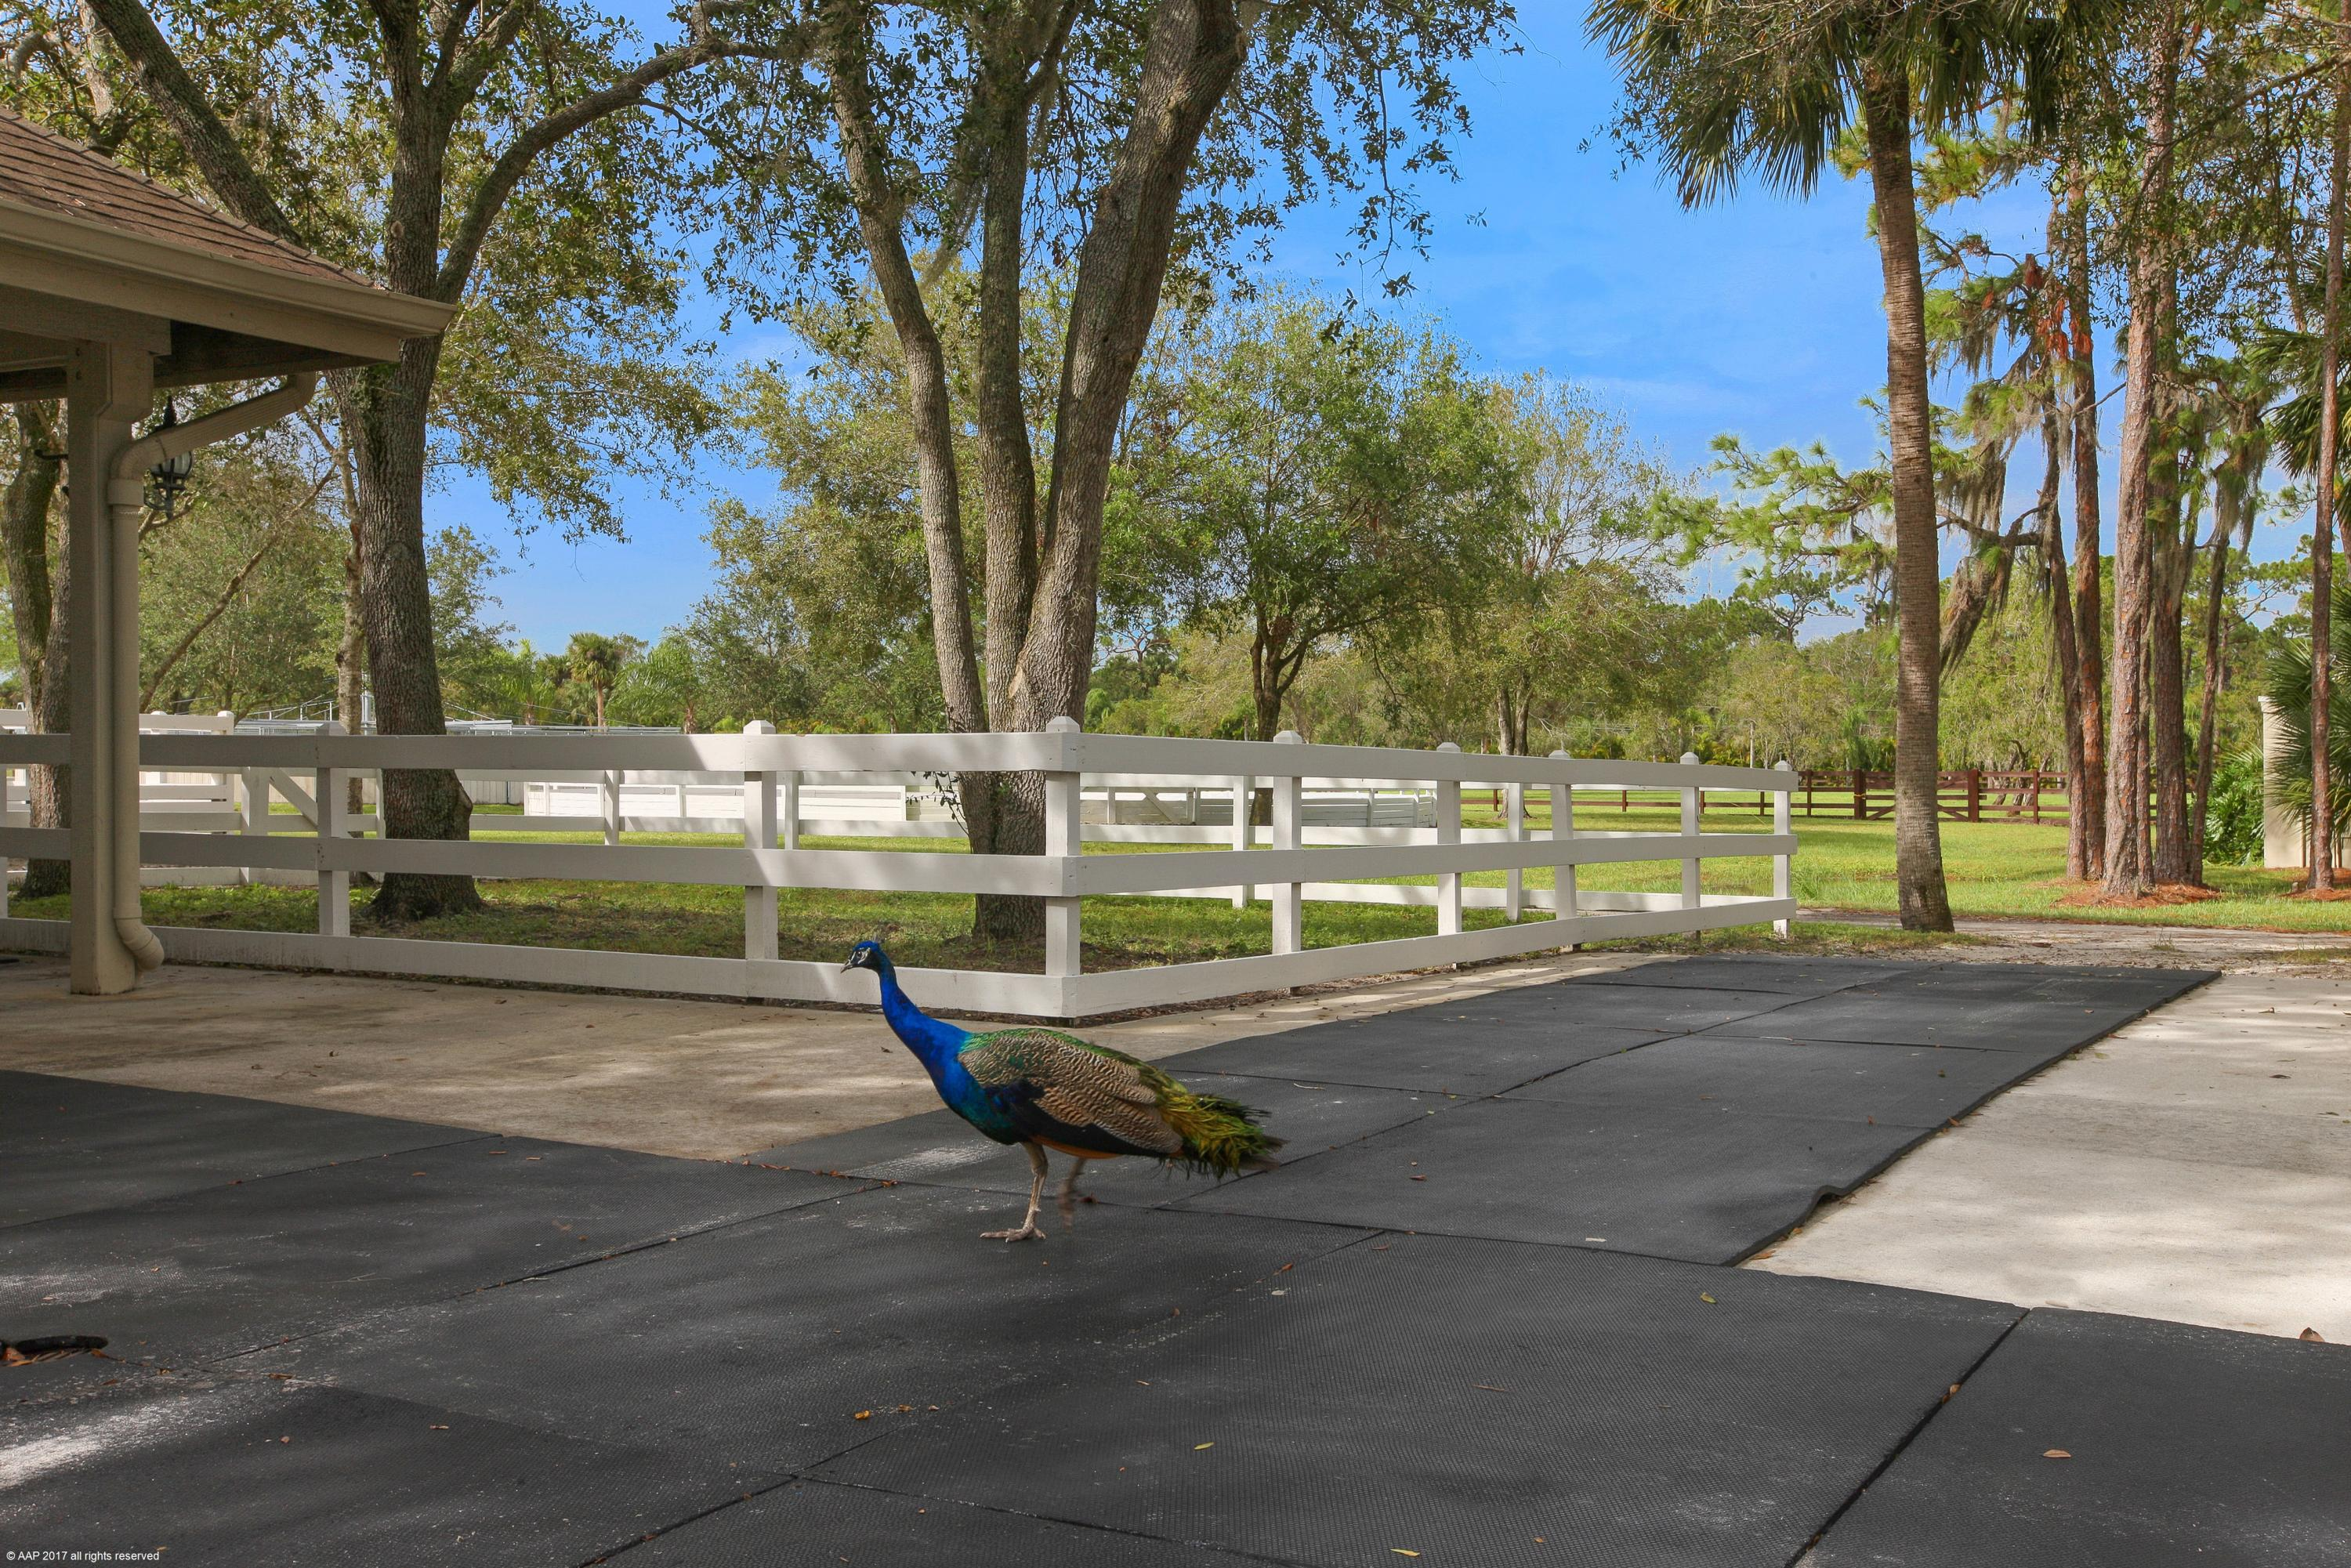 A Peacock visitor